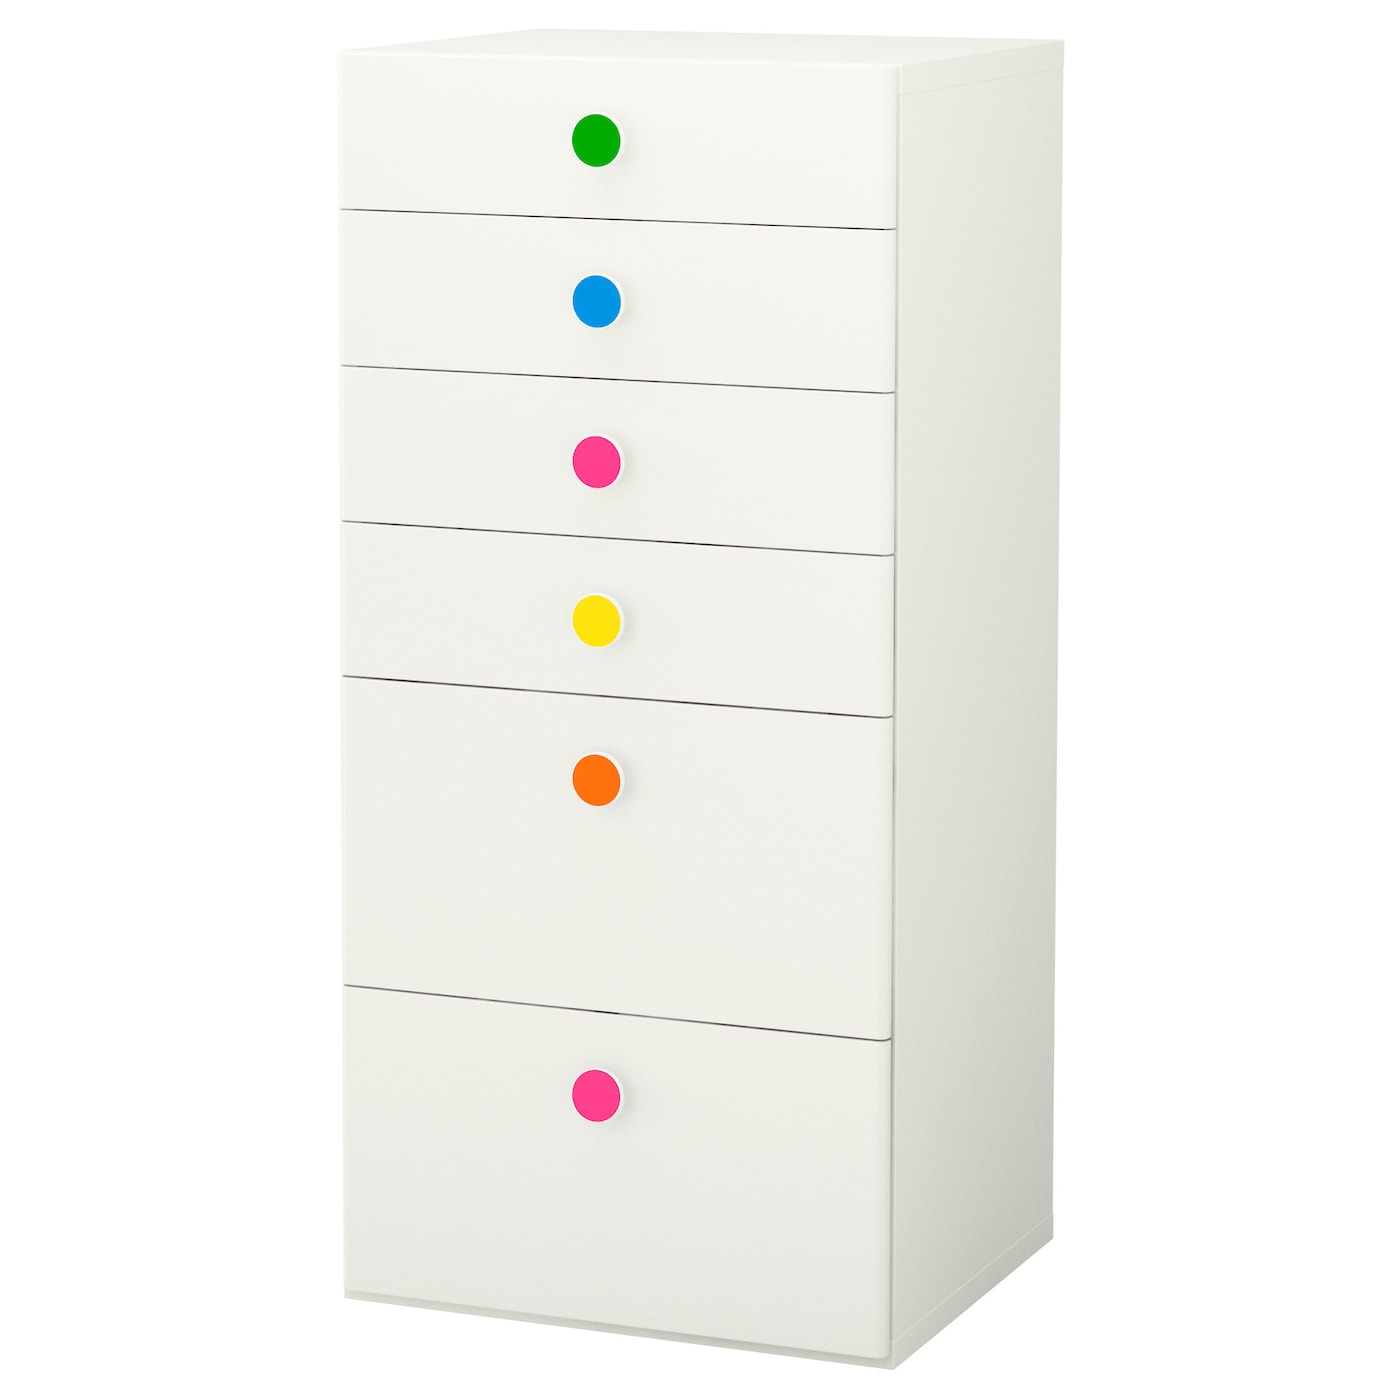 children's bedroom furniture - girls & boys furniture - ikea